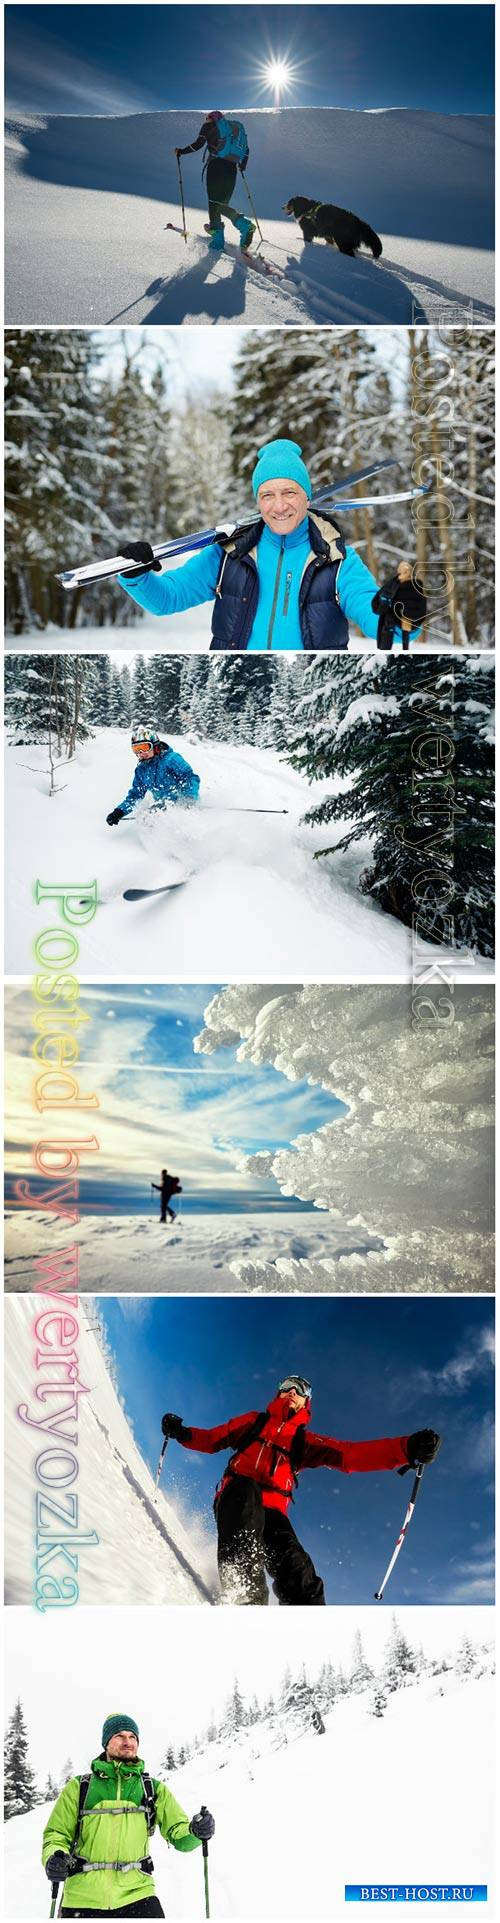 Winter ski vacation beautiful stock photo